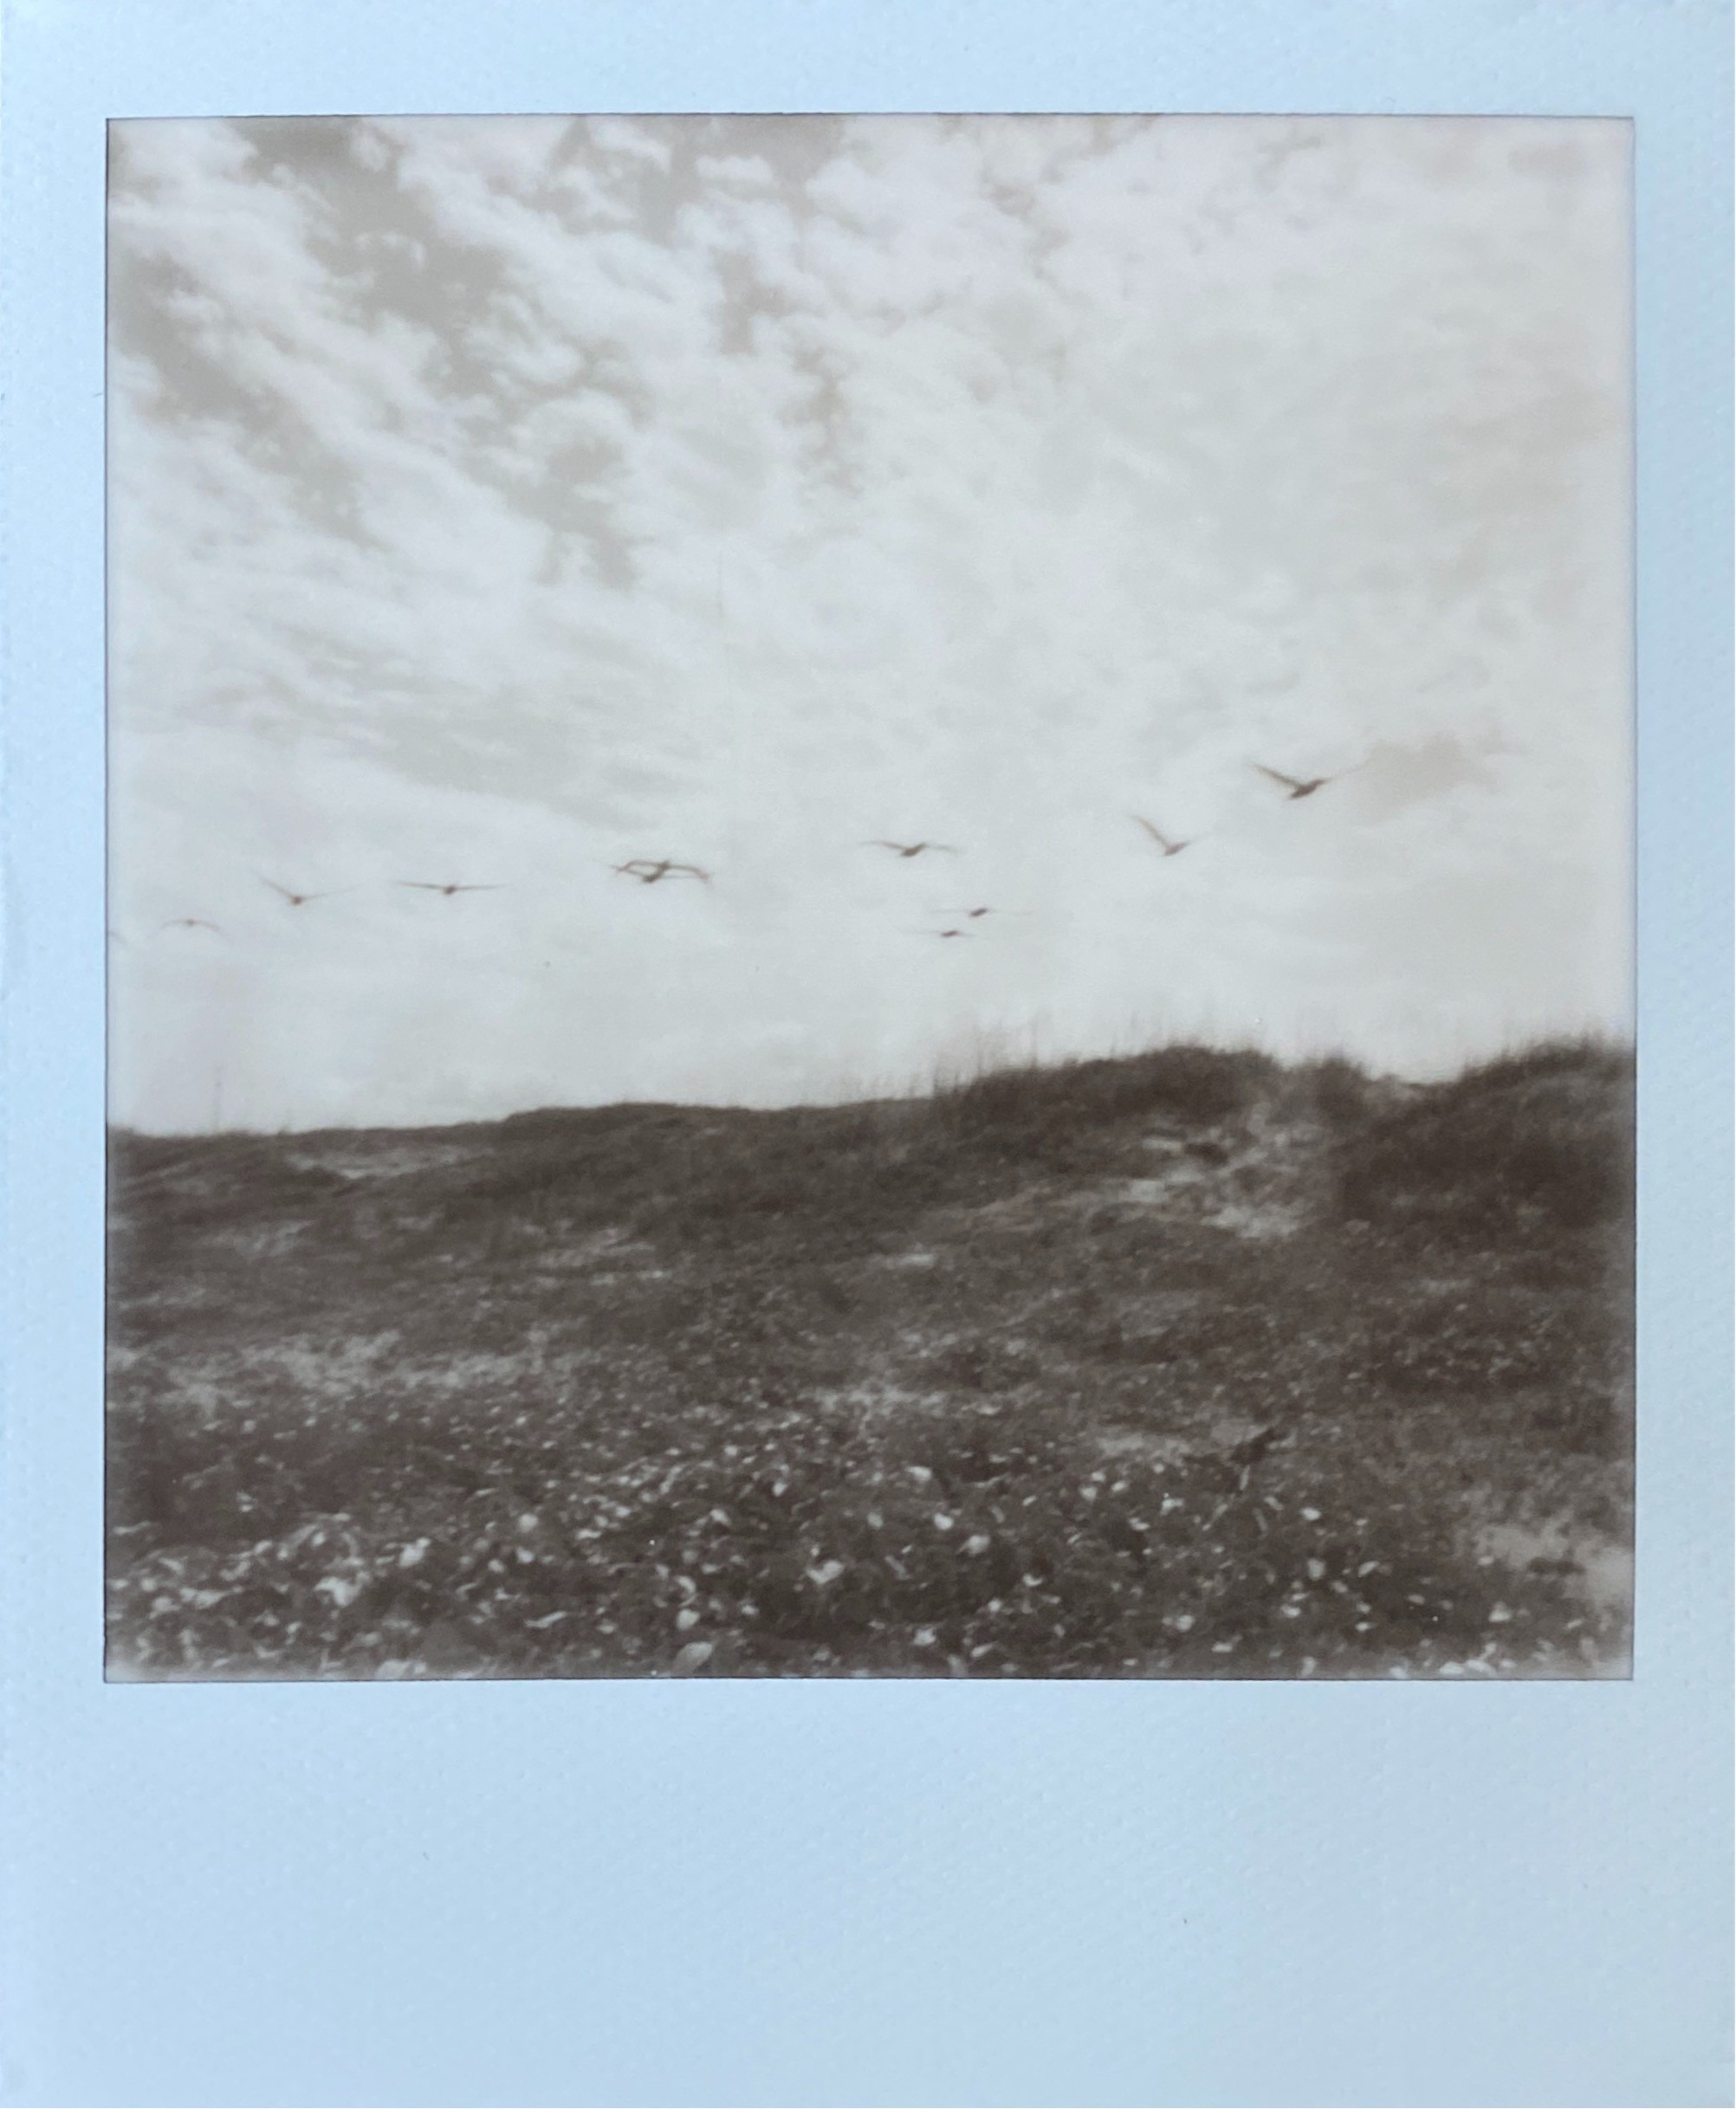 Black and white Polaroid photograph of a line of pelicans flying over dunes on the beach, clouds in the background